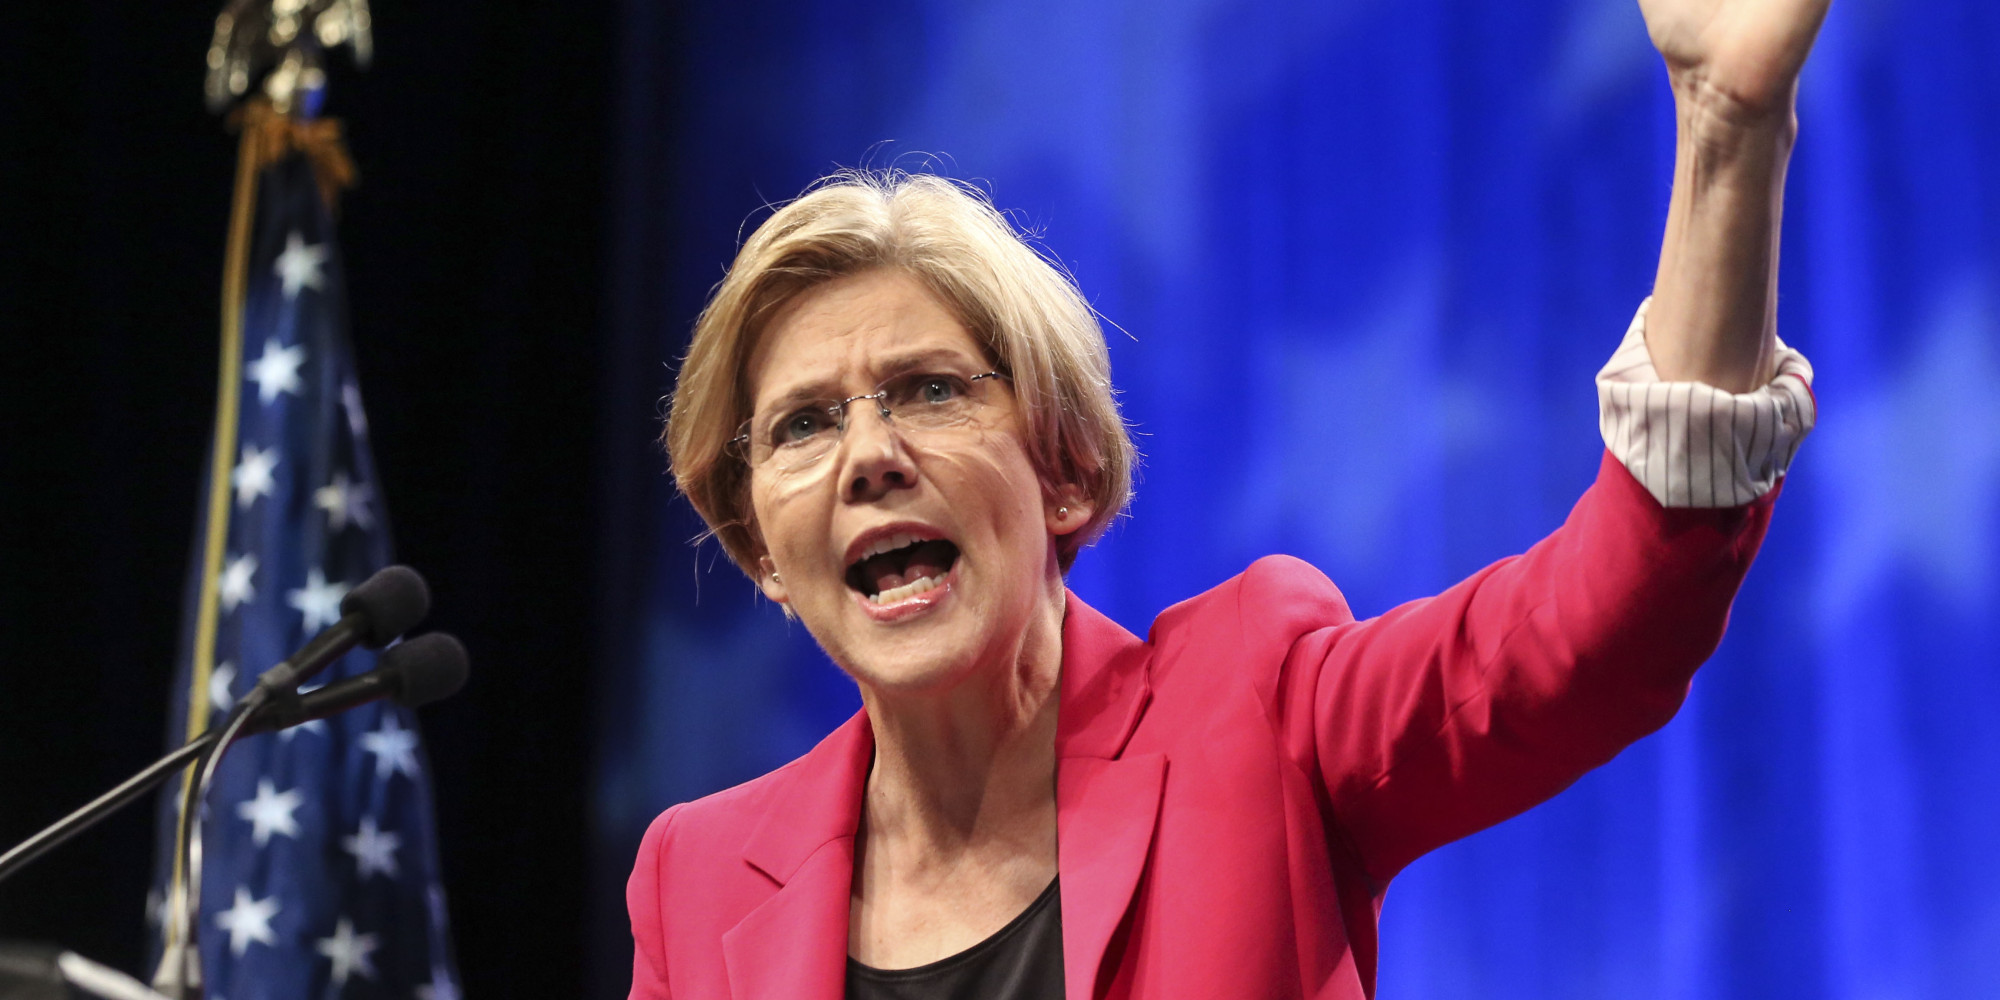 In New Hampshire, Elizabeth Warren Fires Up 'Nasty Women' to Vote for Hillary Clinton (Video)